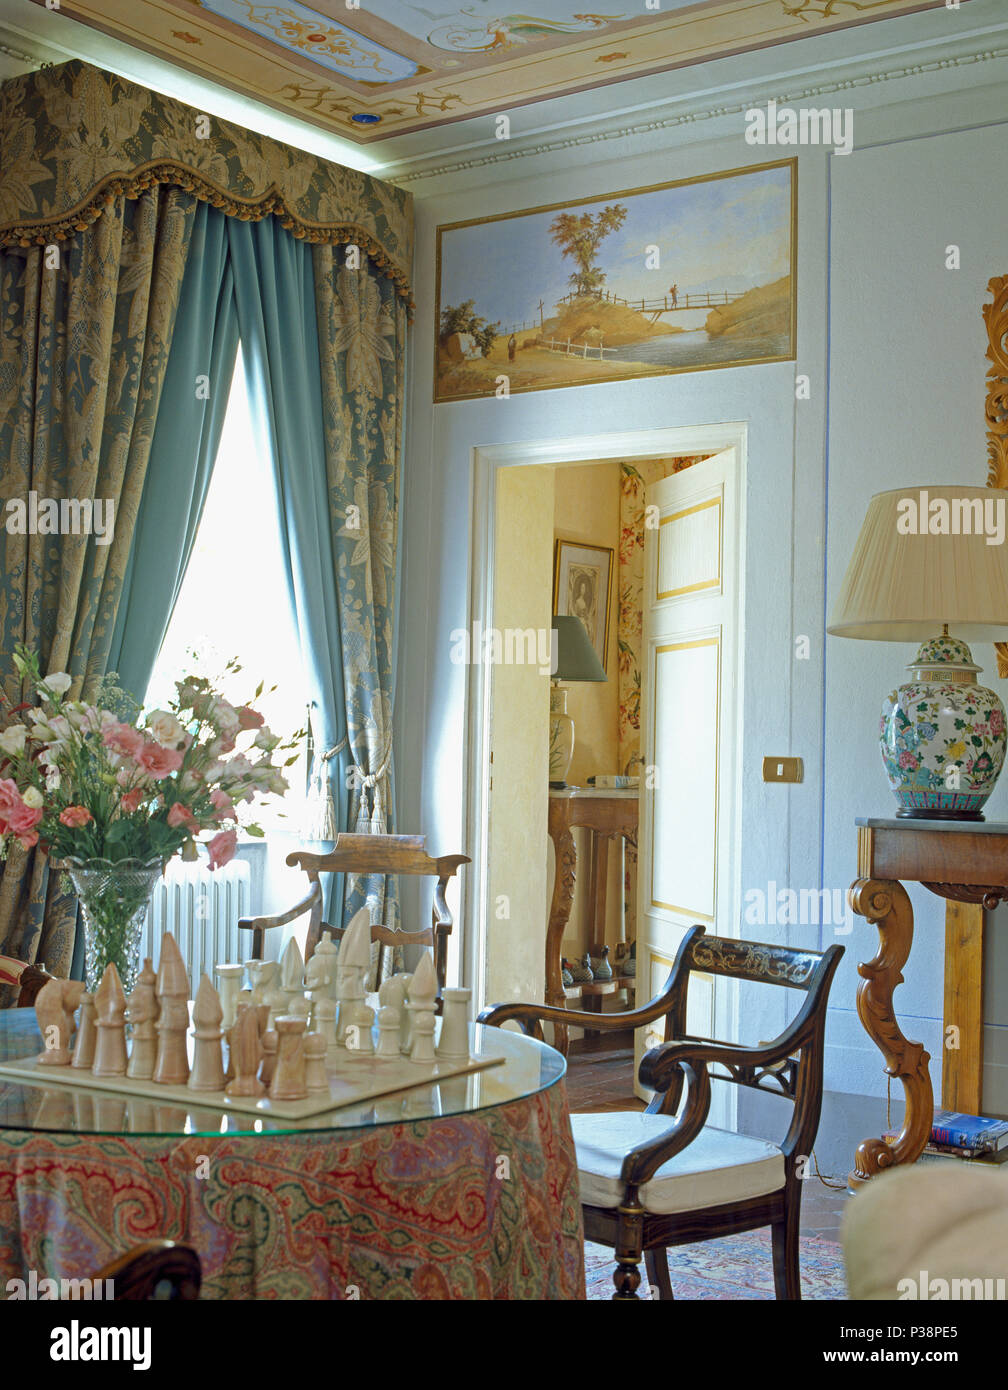 Chess Set On Dining Table With Patterned Cloth In Elegant Tuscan Dining Room  With Heavy Blue And Cream Curtains